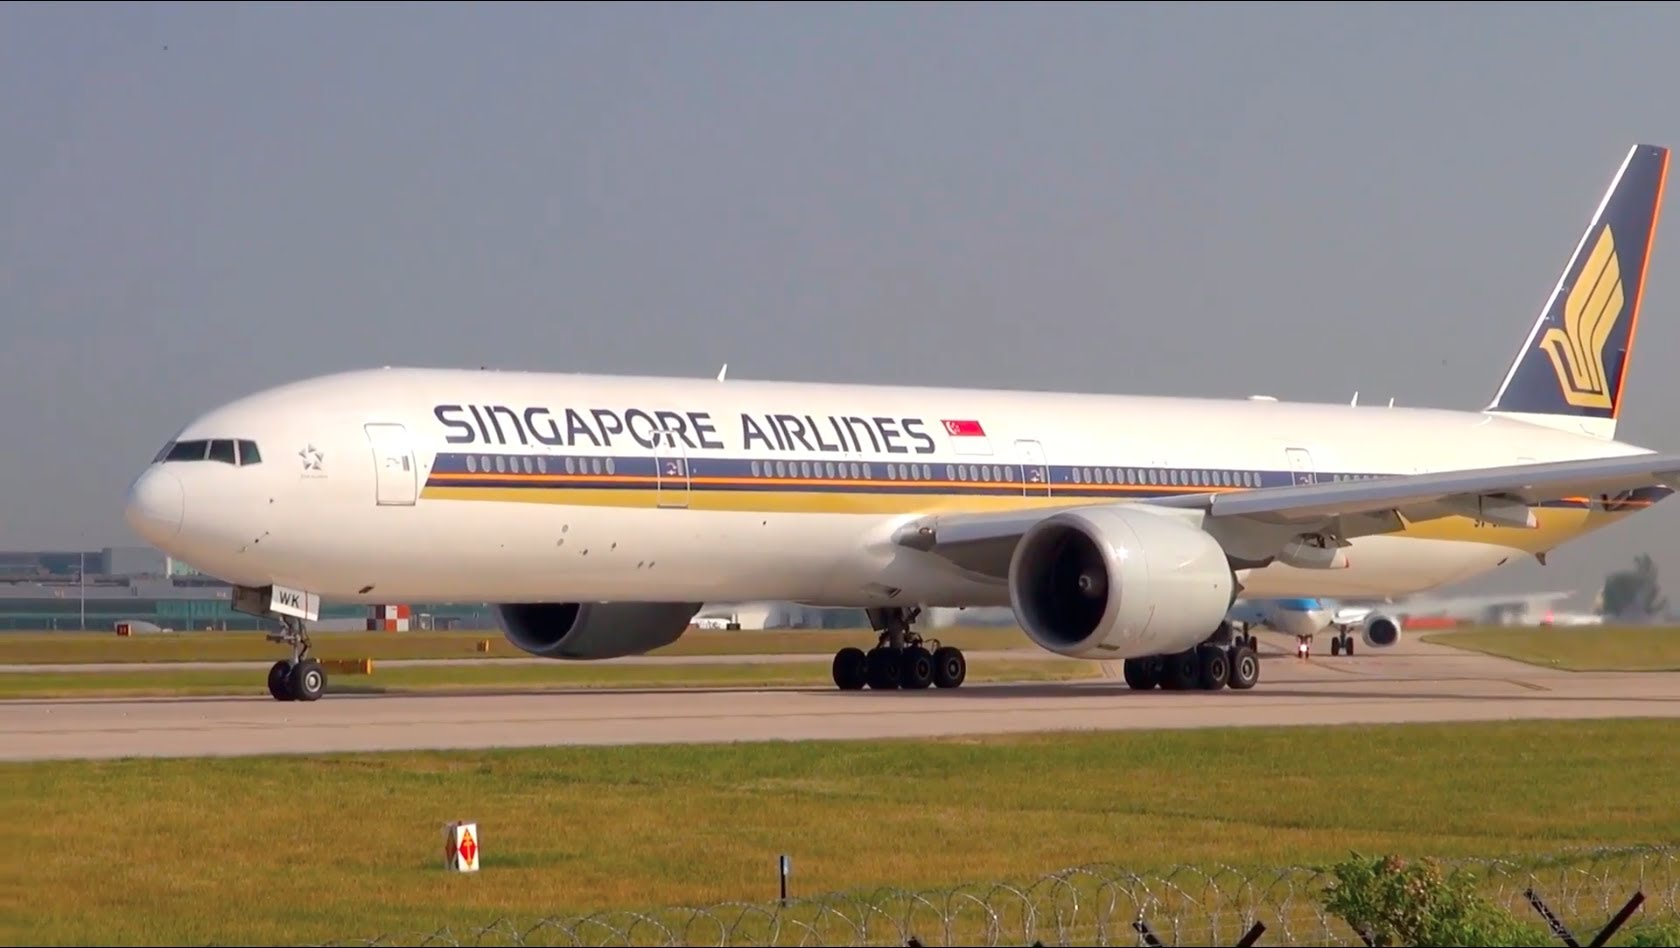 Singapore Airlines Boeing 777-300ER (Foto: AusAviation149)